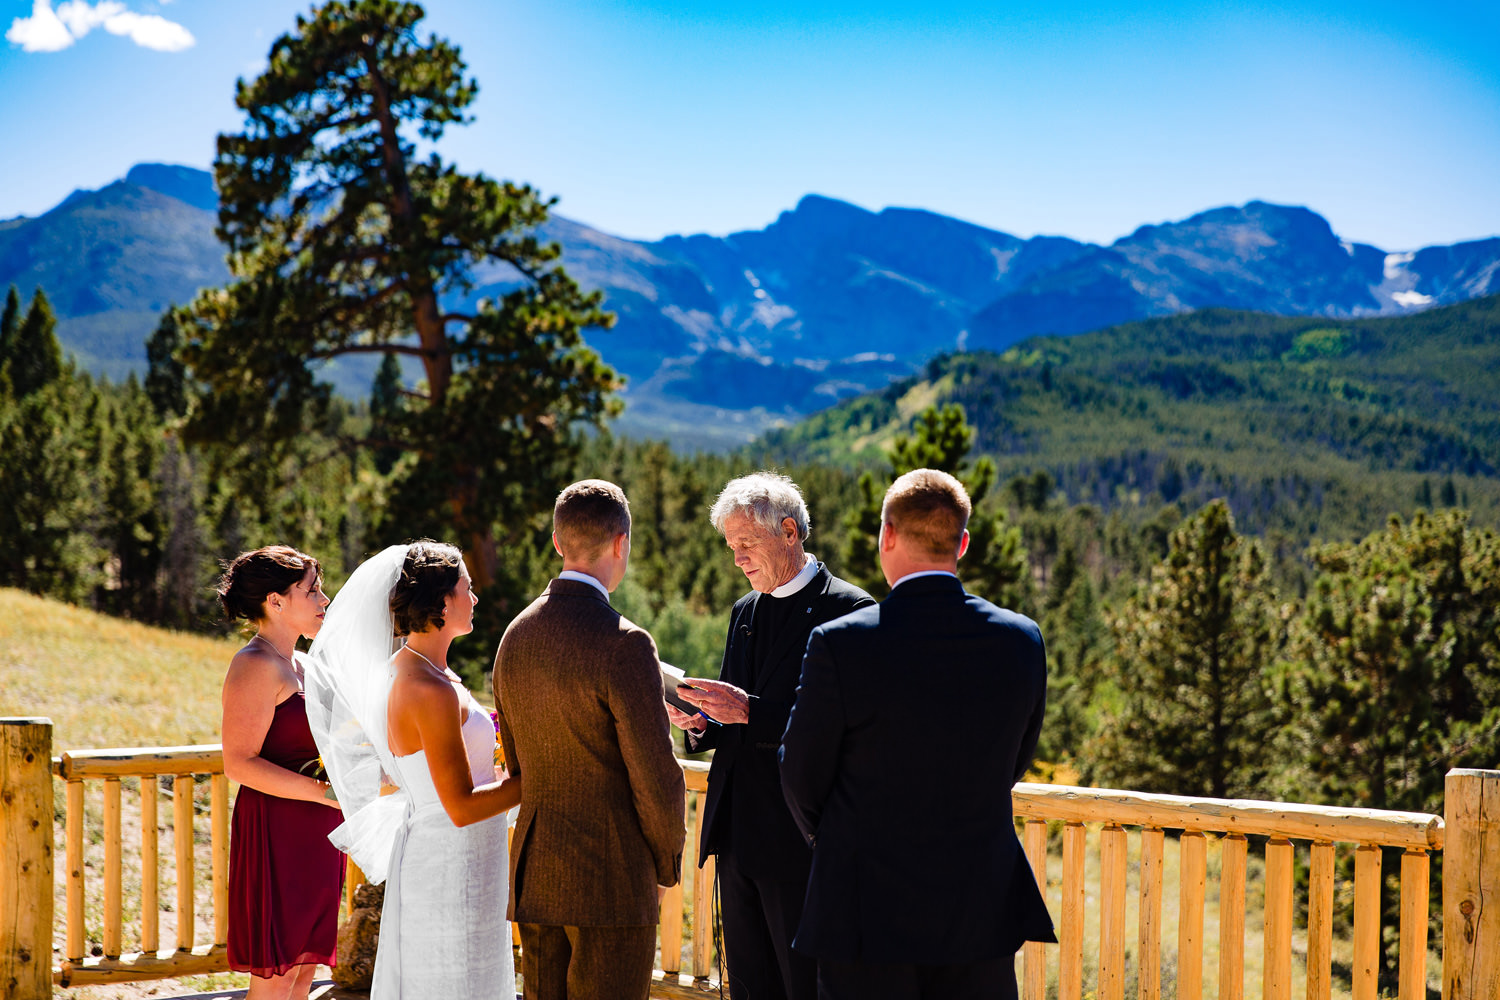 ymca-of-the-rockies-wedding-estes-park-013.jpg